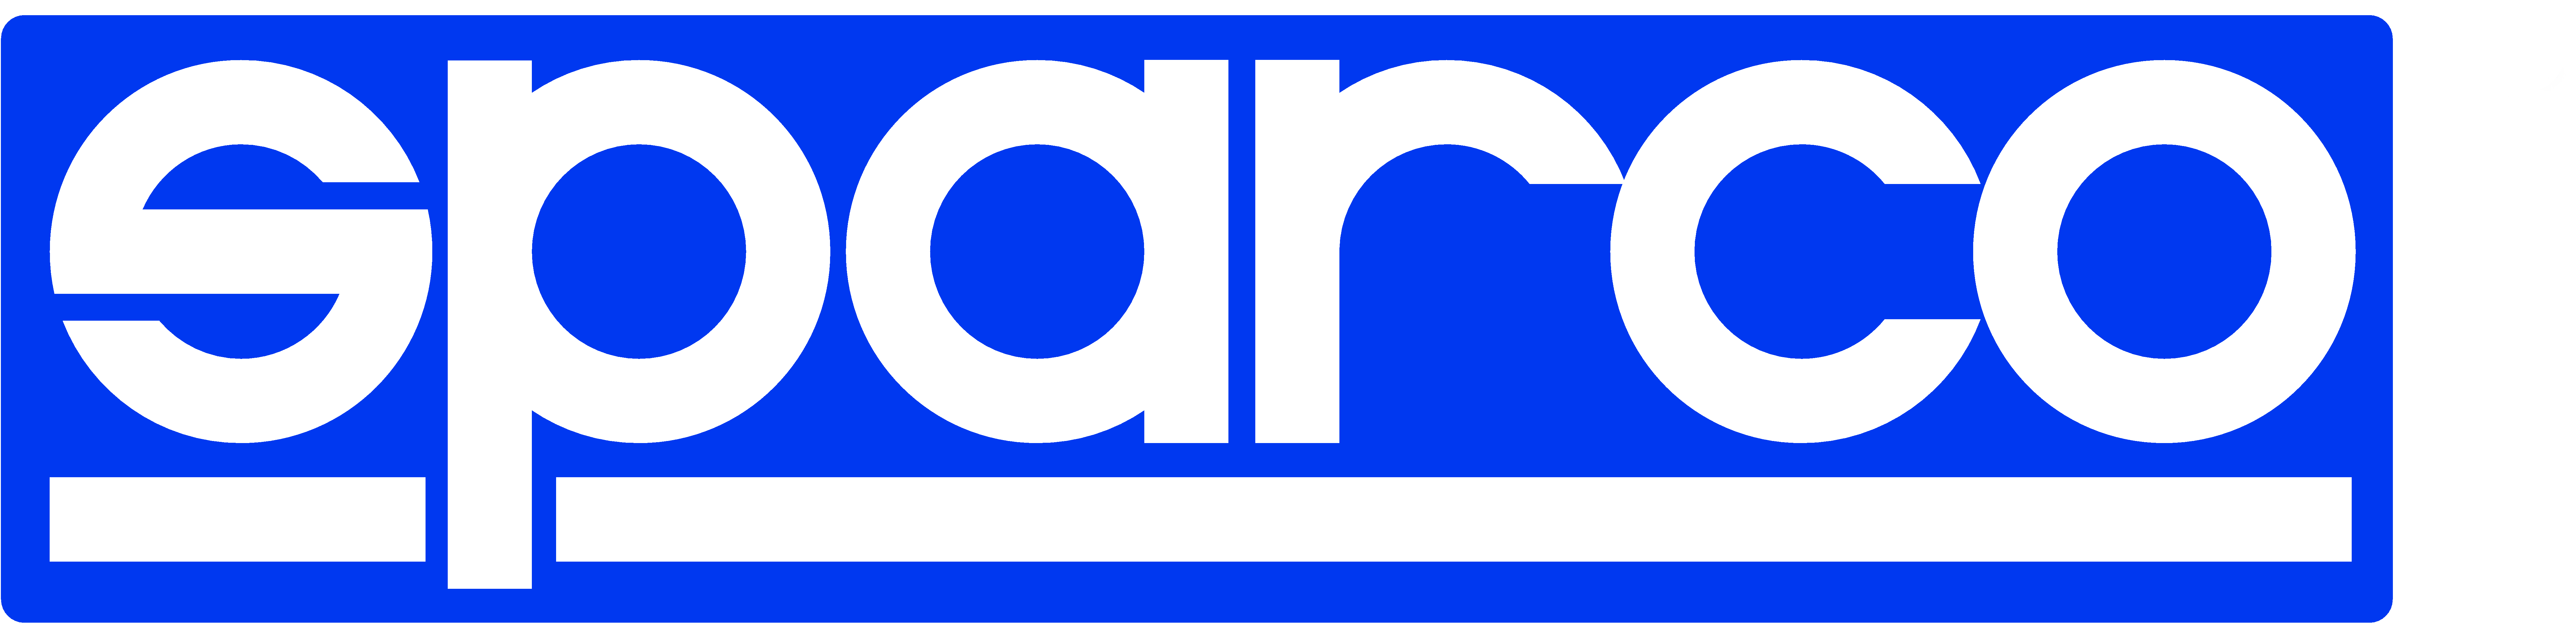 Logo Sparco.png